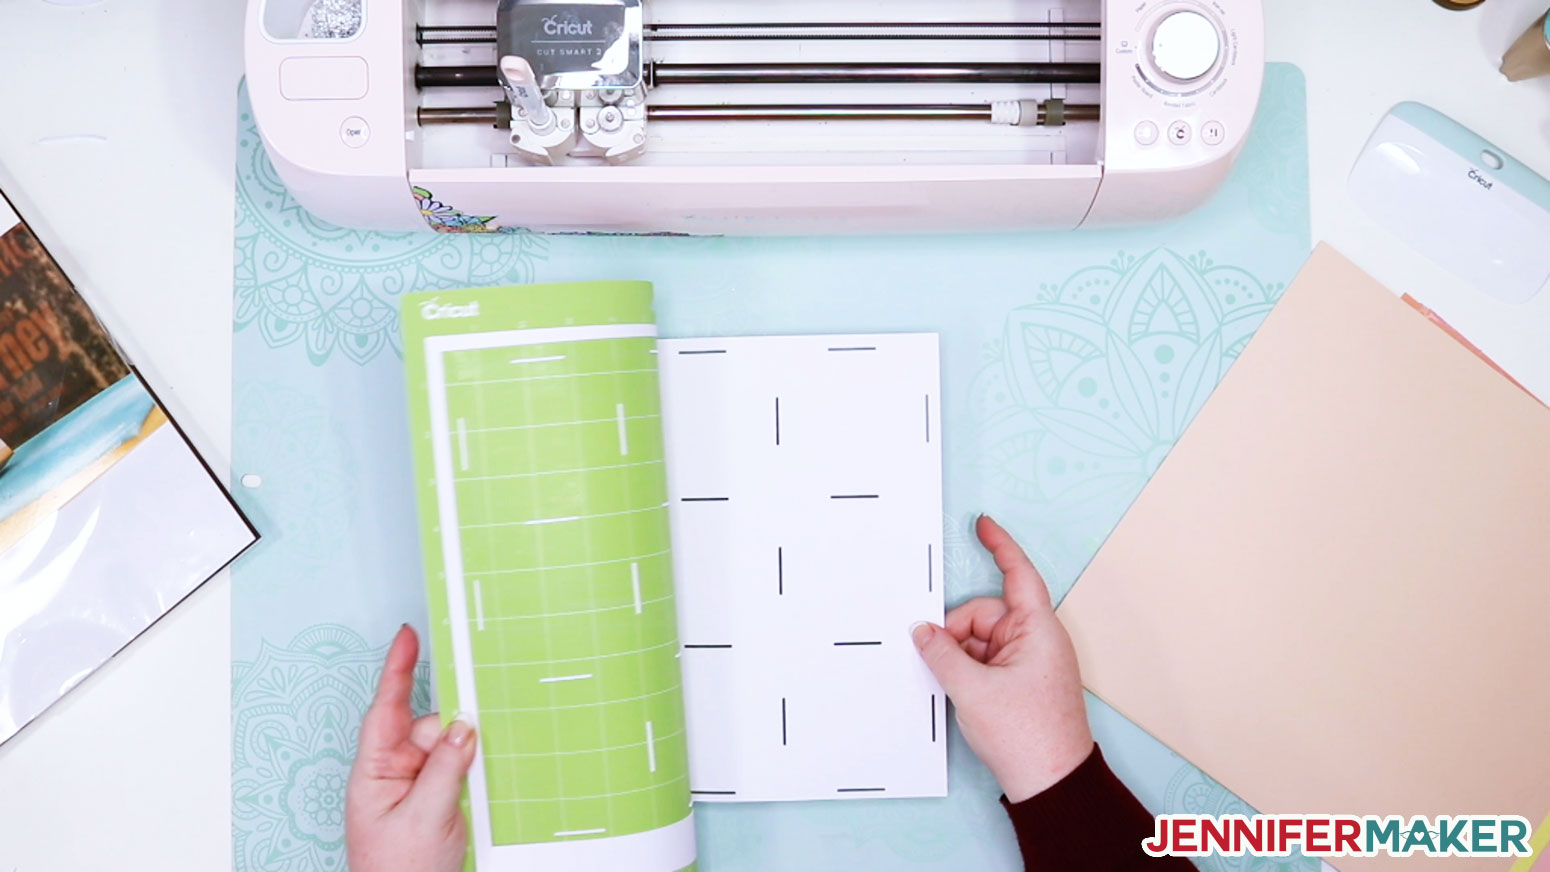 Removing the Kraft board from the green Cricut cutting mat